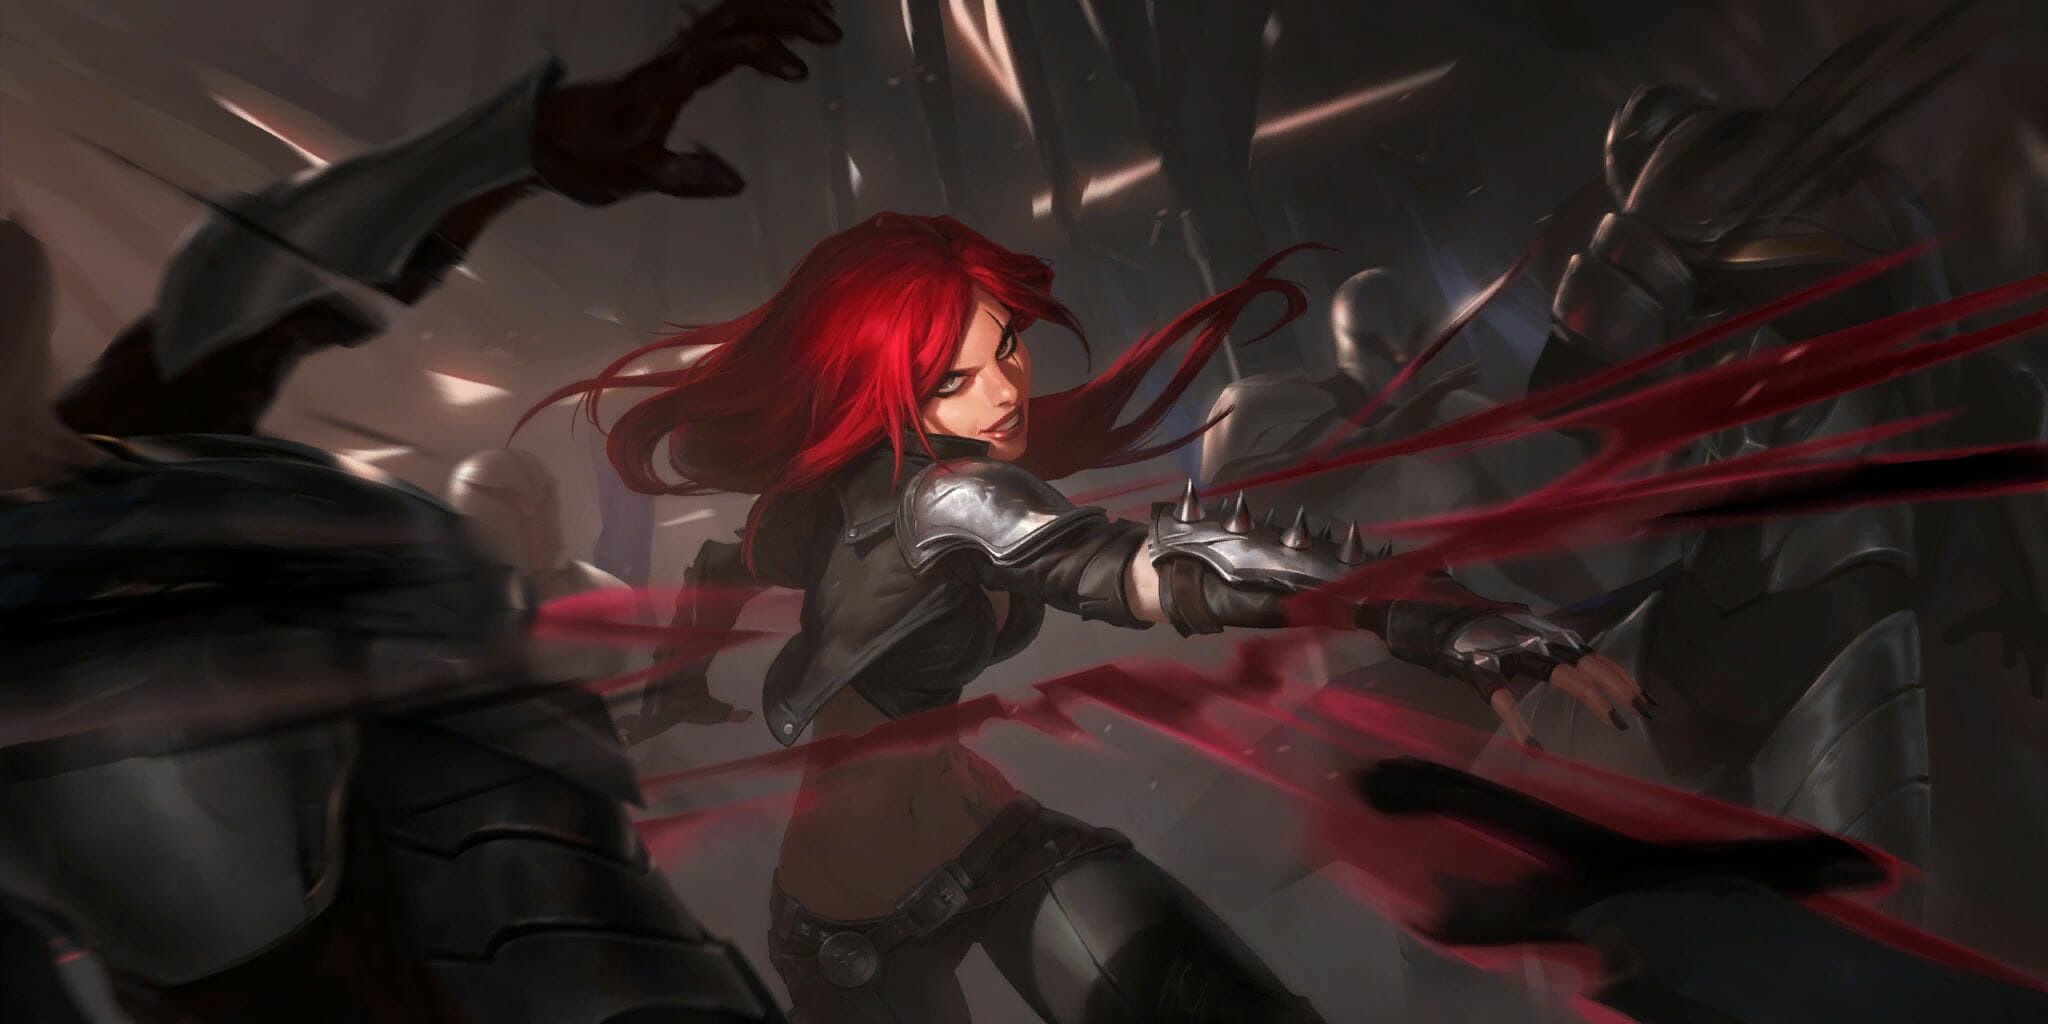 Kat Doing Her Death Lotus Ult Ability Throwing Daggers at Enemies